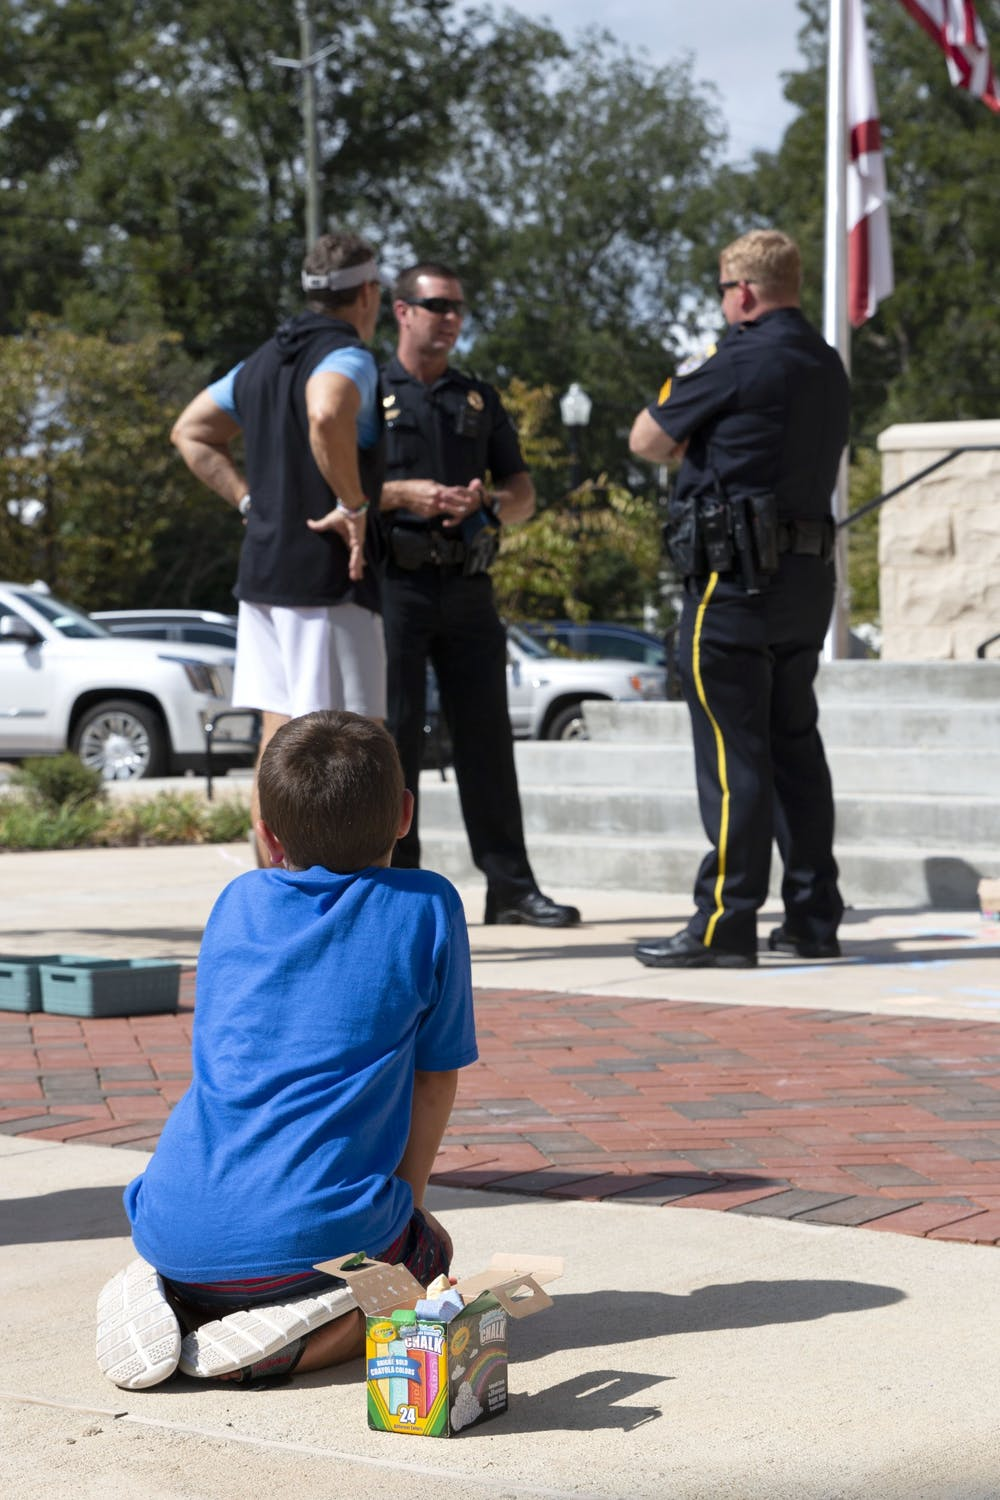 Police officers connect with children, community members